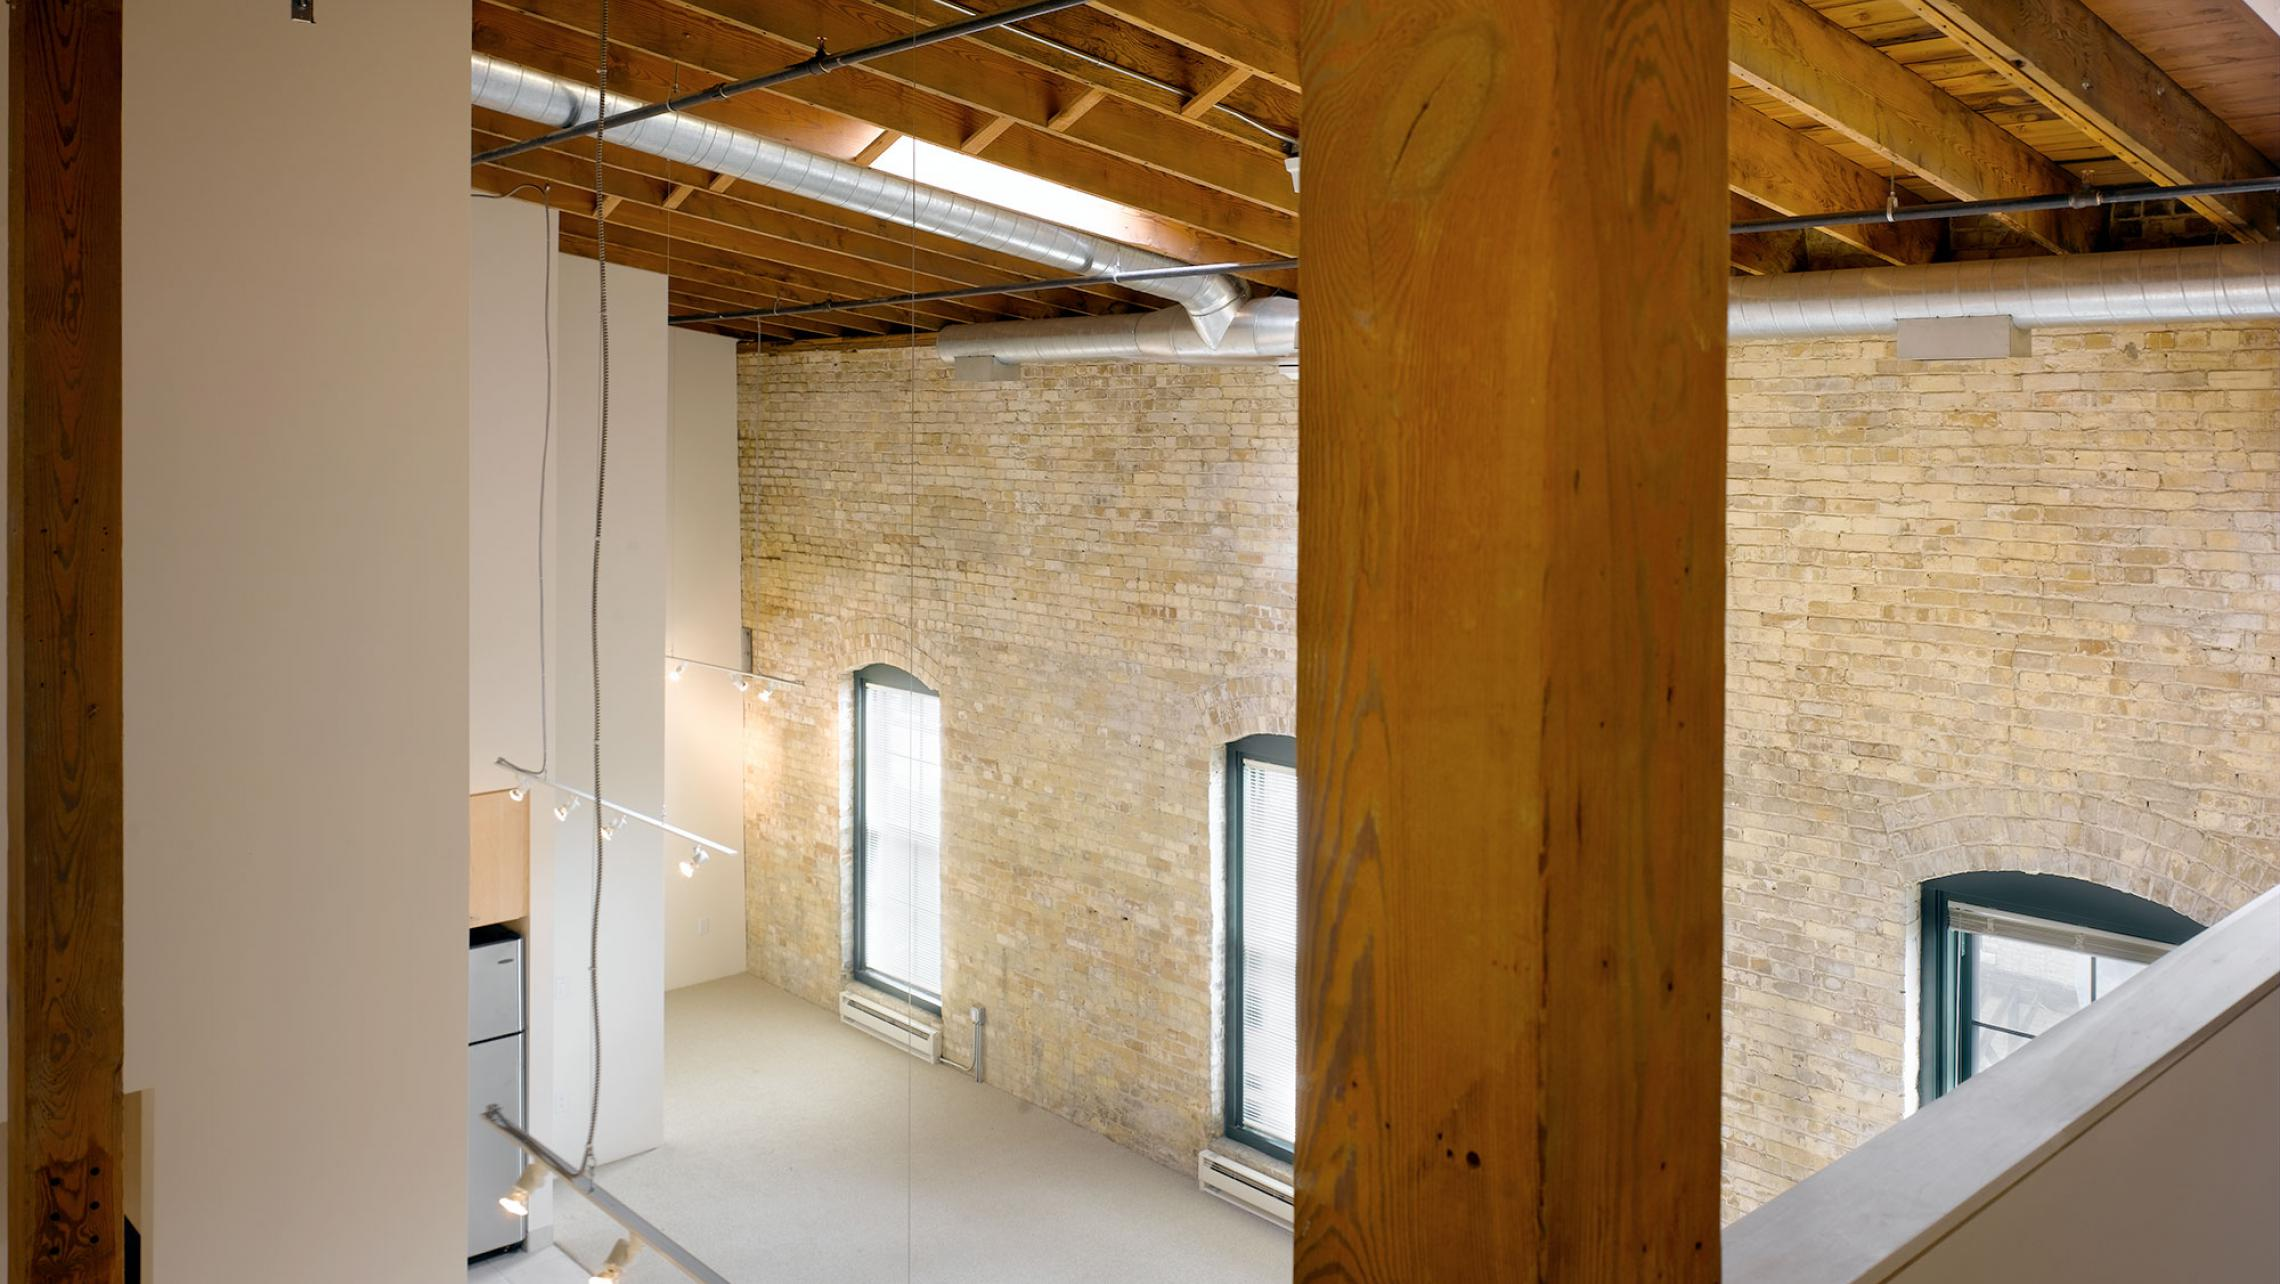 ULI Tobacco Lofts Apartments - Loft View with Exposed Wood Beams